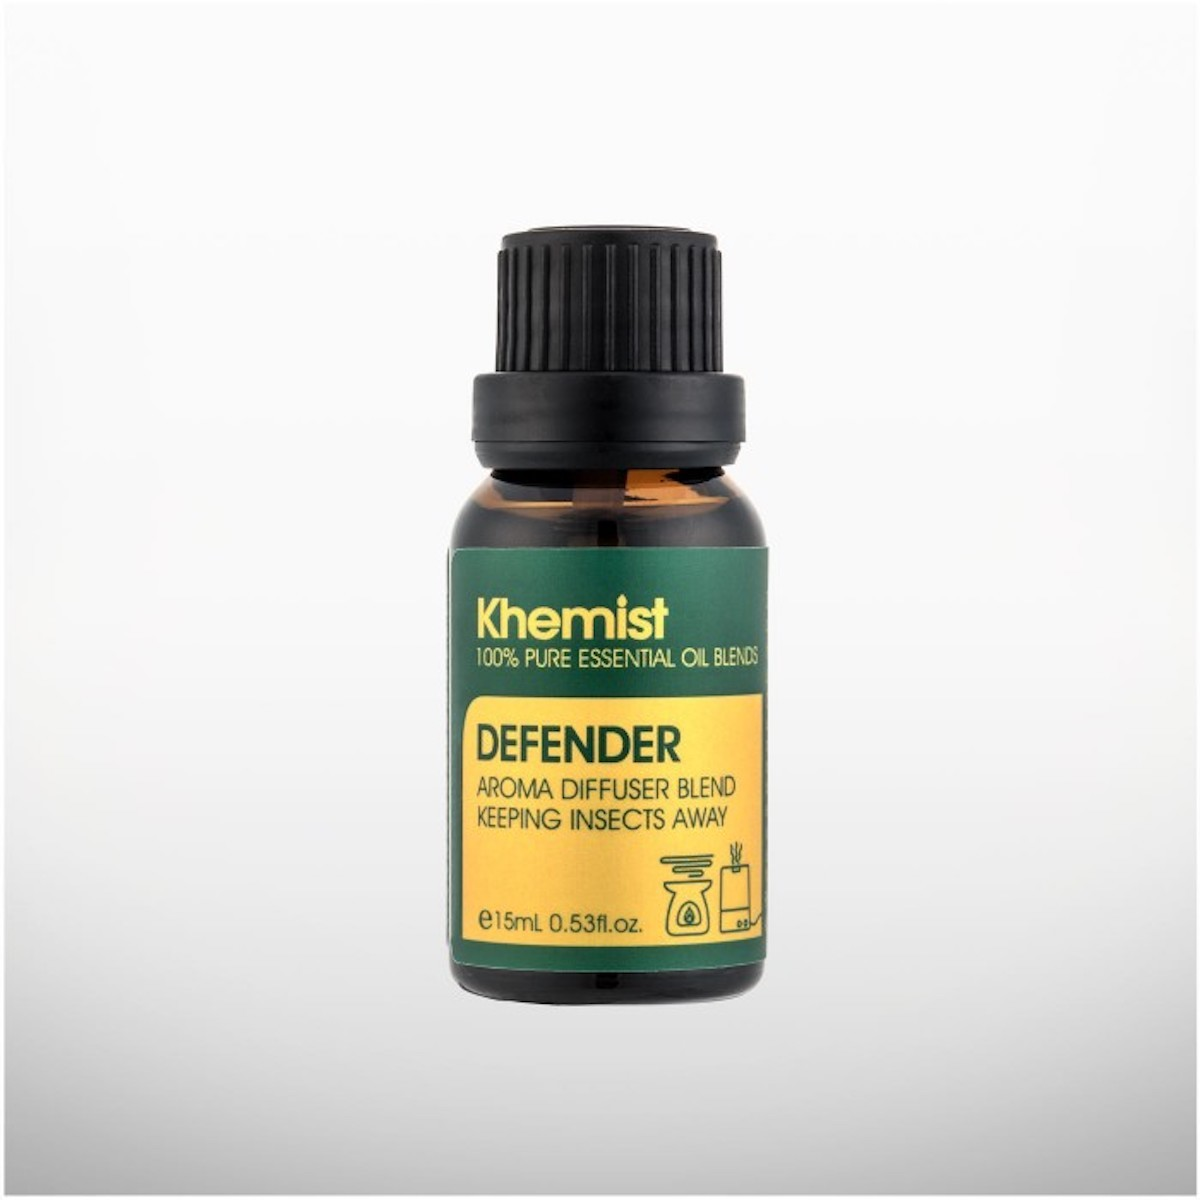 DEFENDER Essential Oil blend 15ml